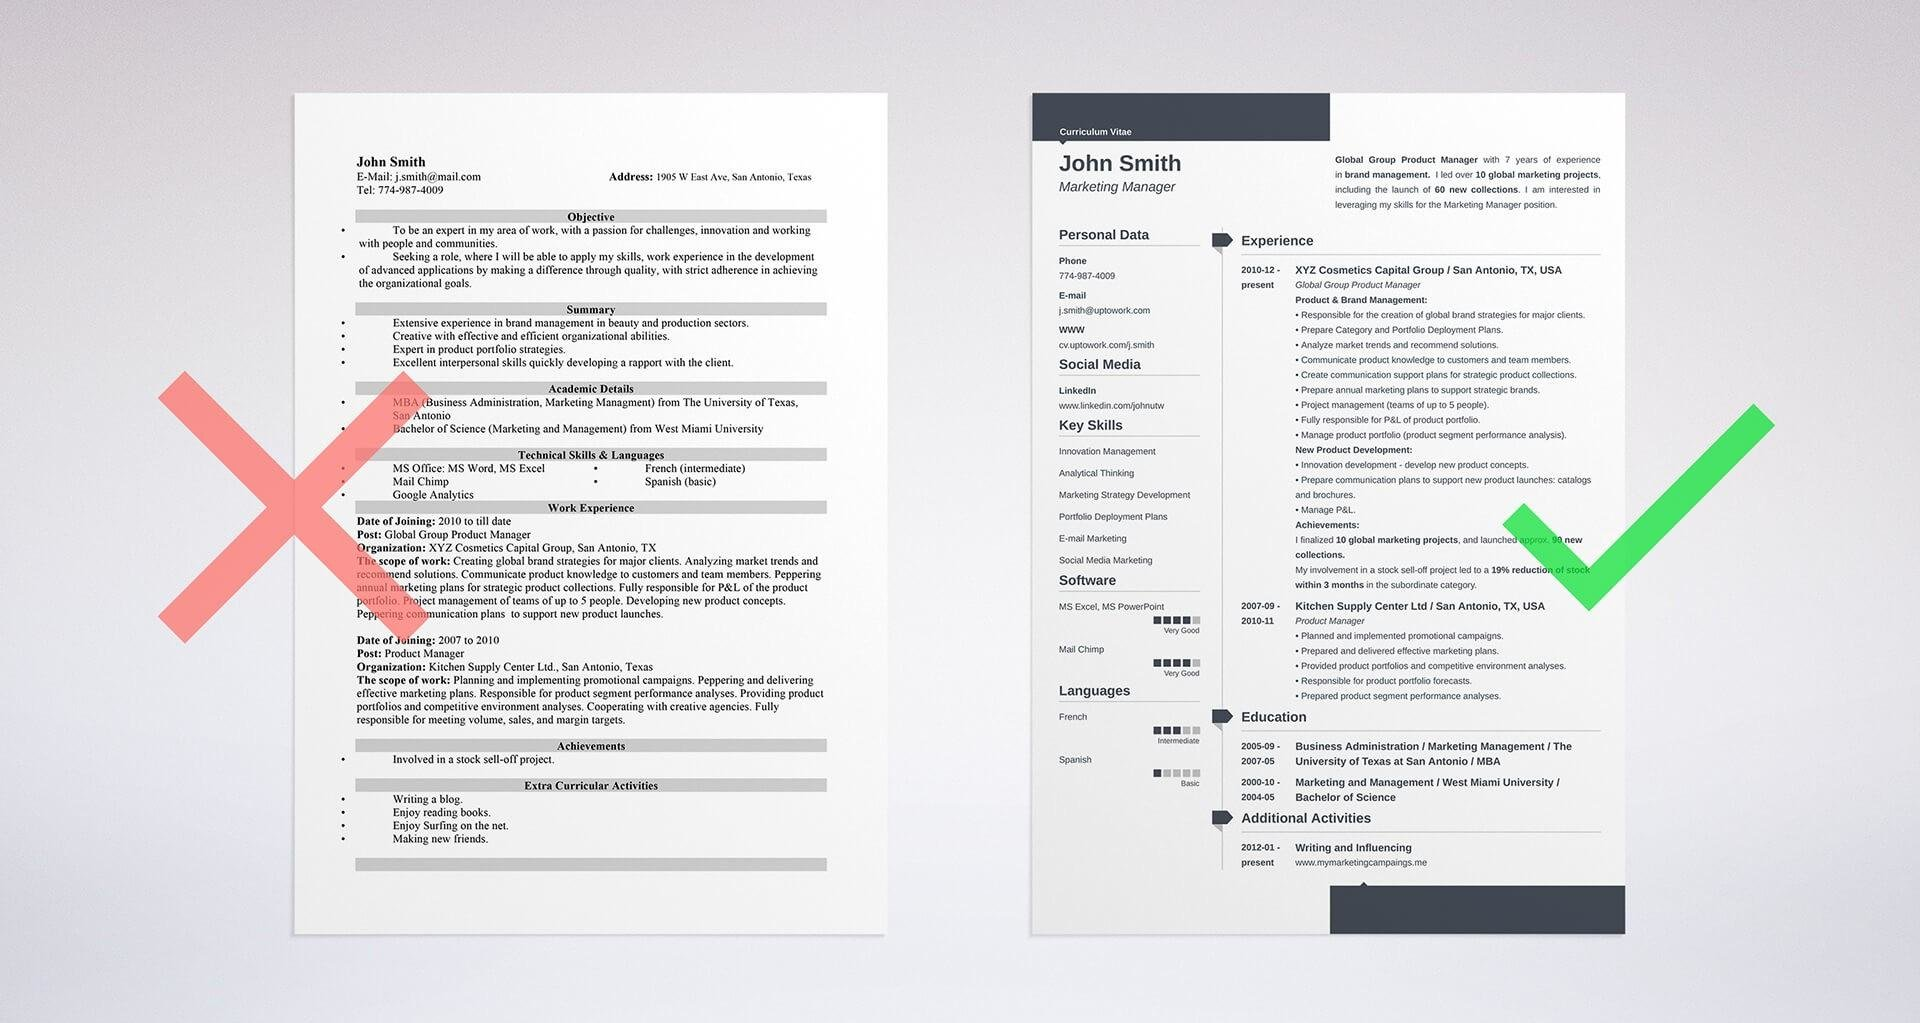 Attractive +20 Resume Objective Examples   Use Them On Your Resume (Tips) For Objective On A Resume